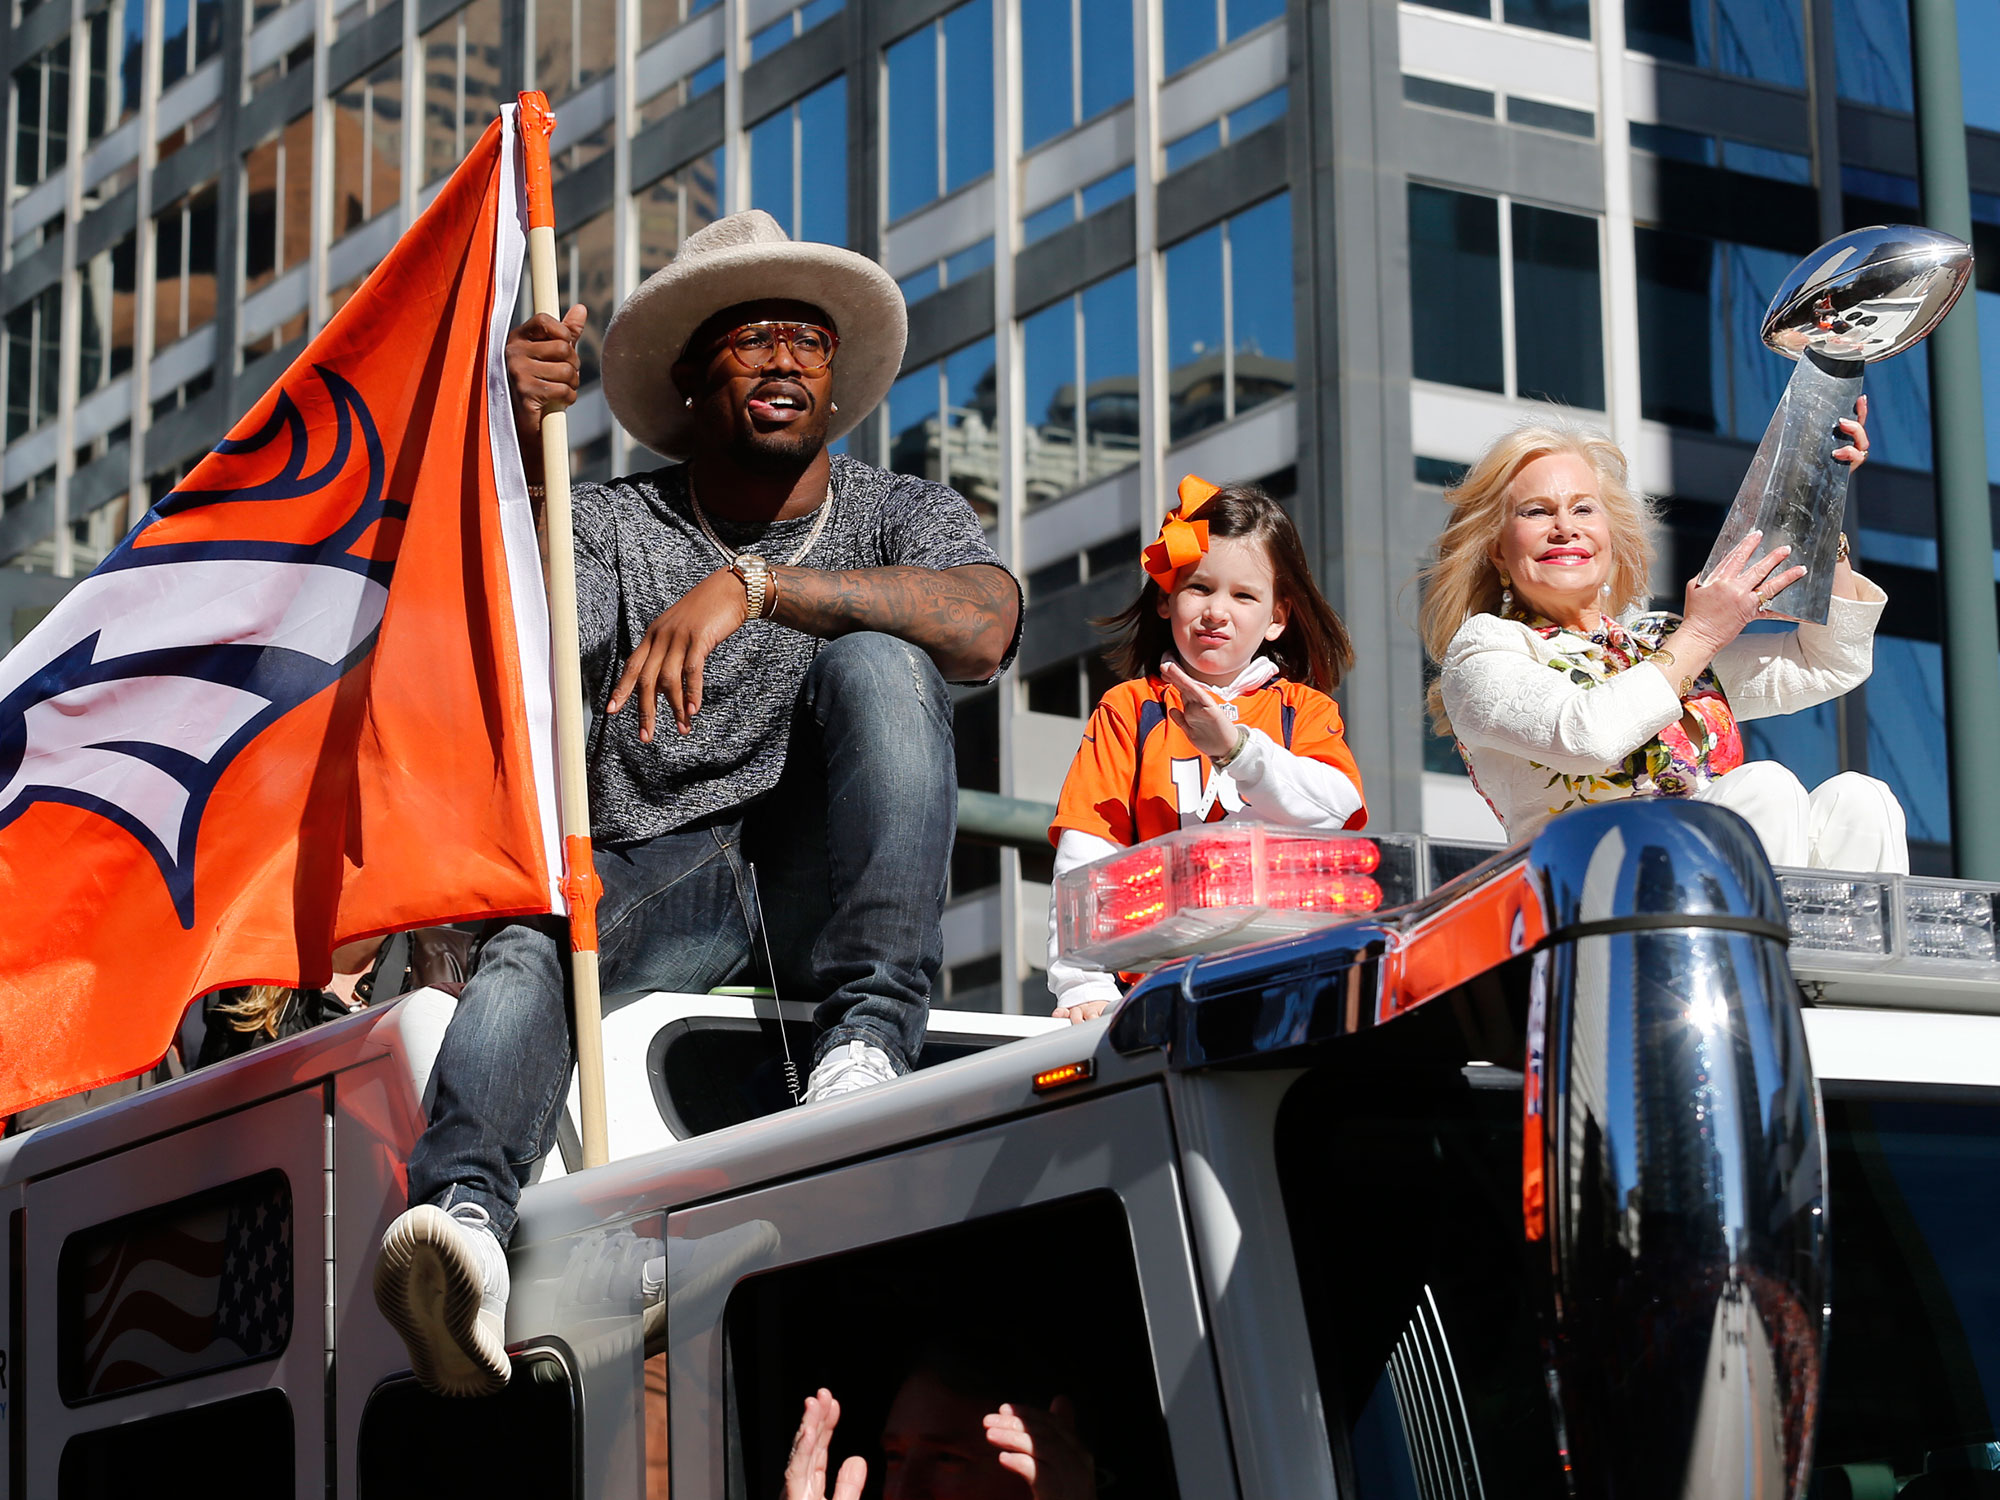 Miller rode through downtown Denver in style after the Broncos won it all.